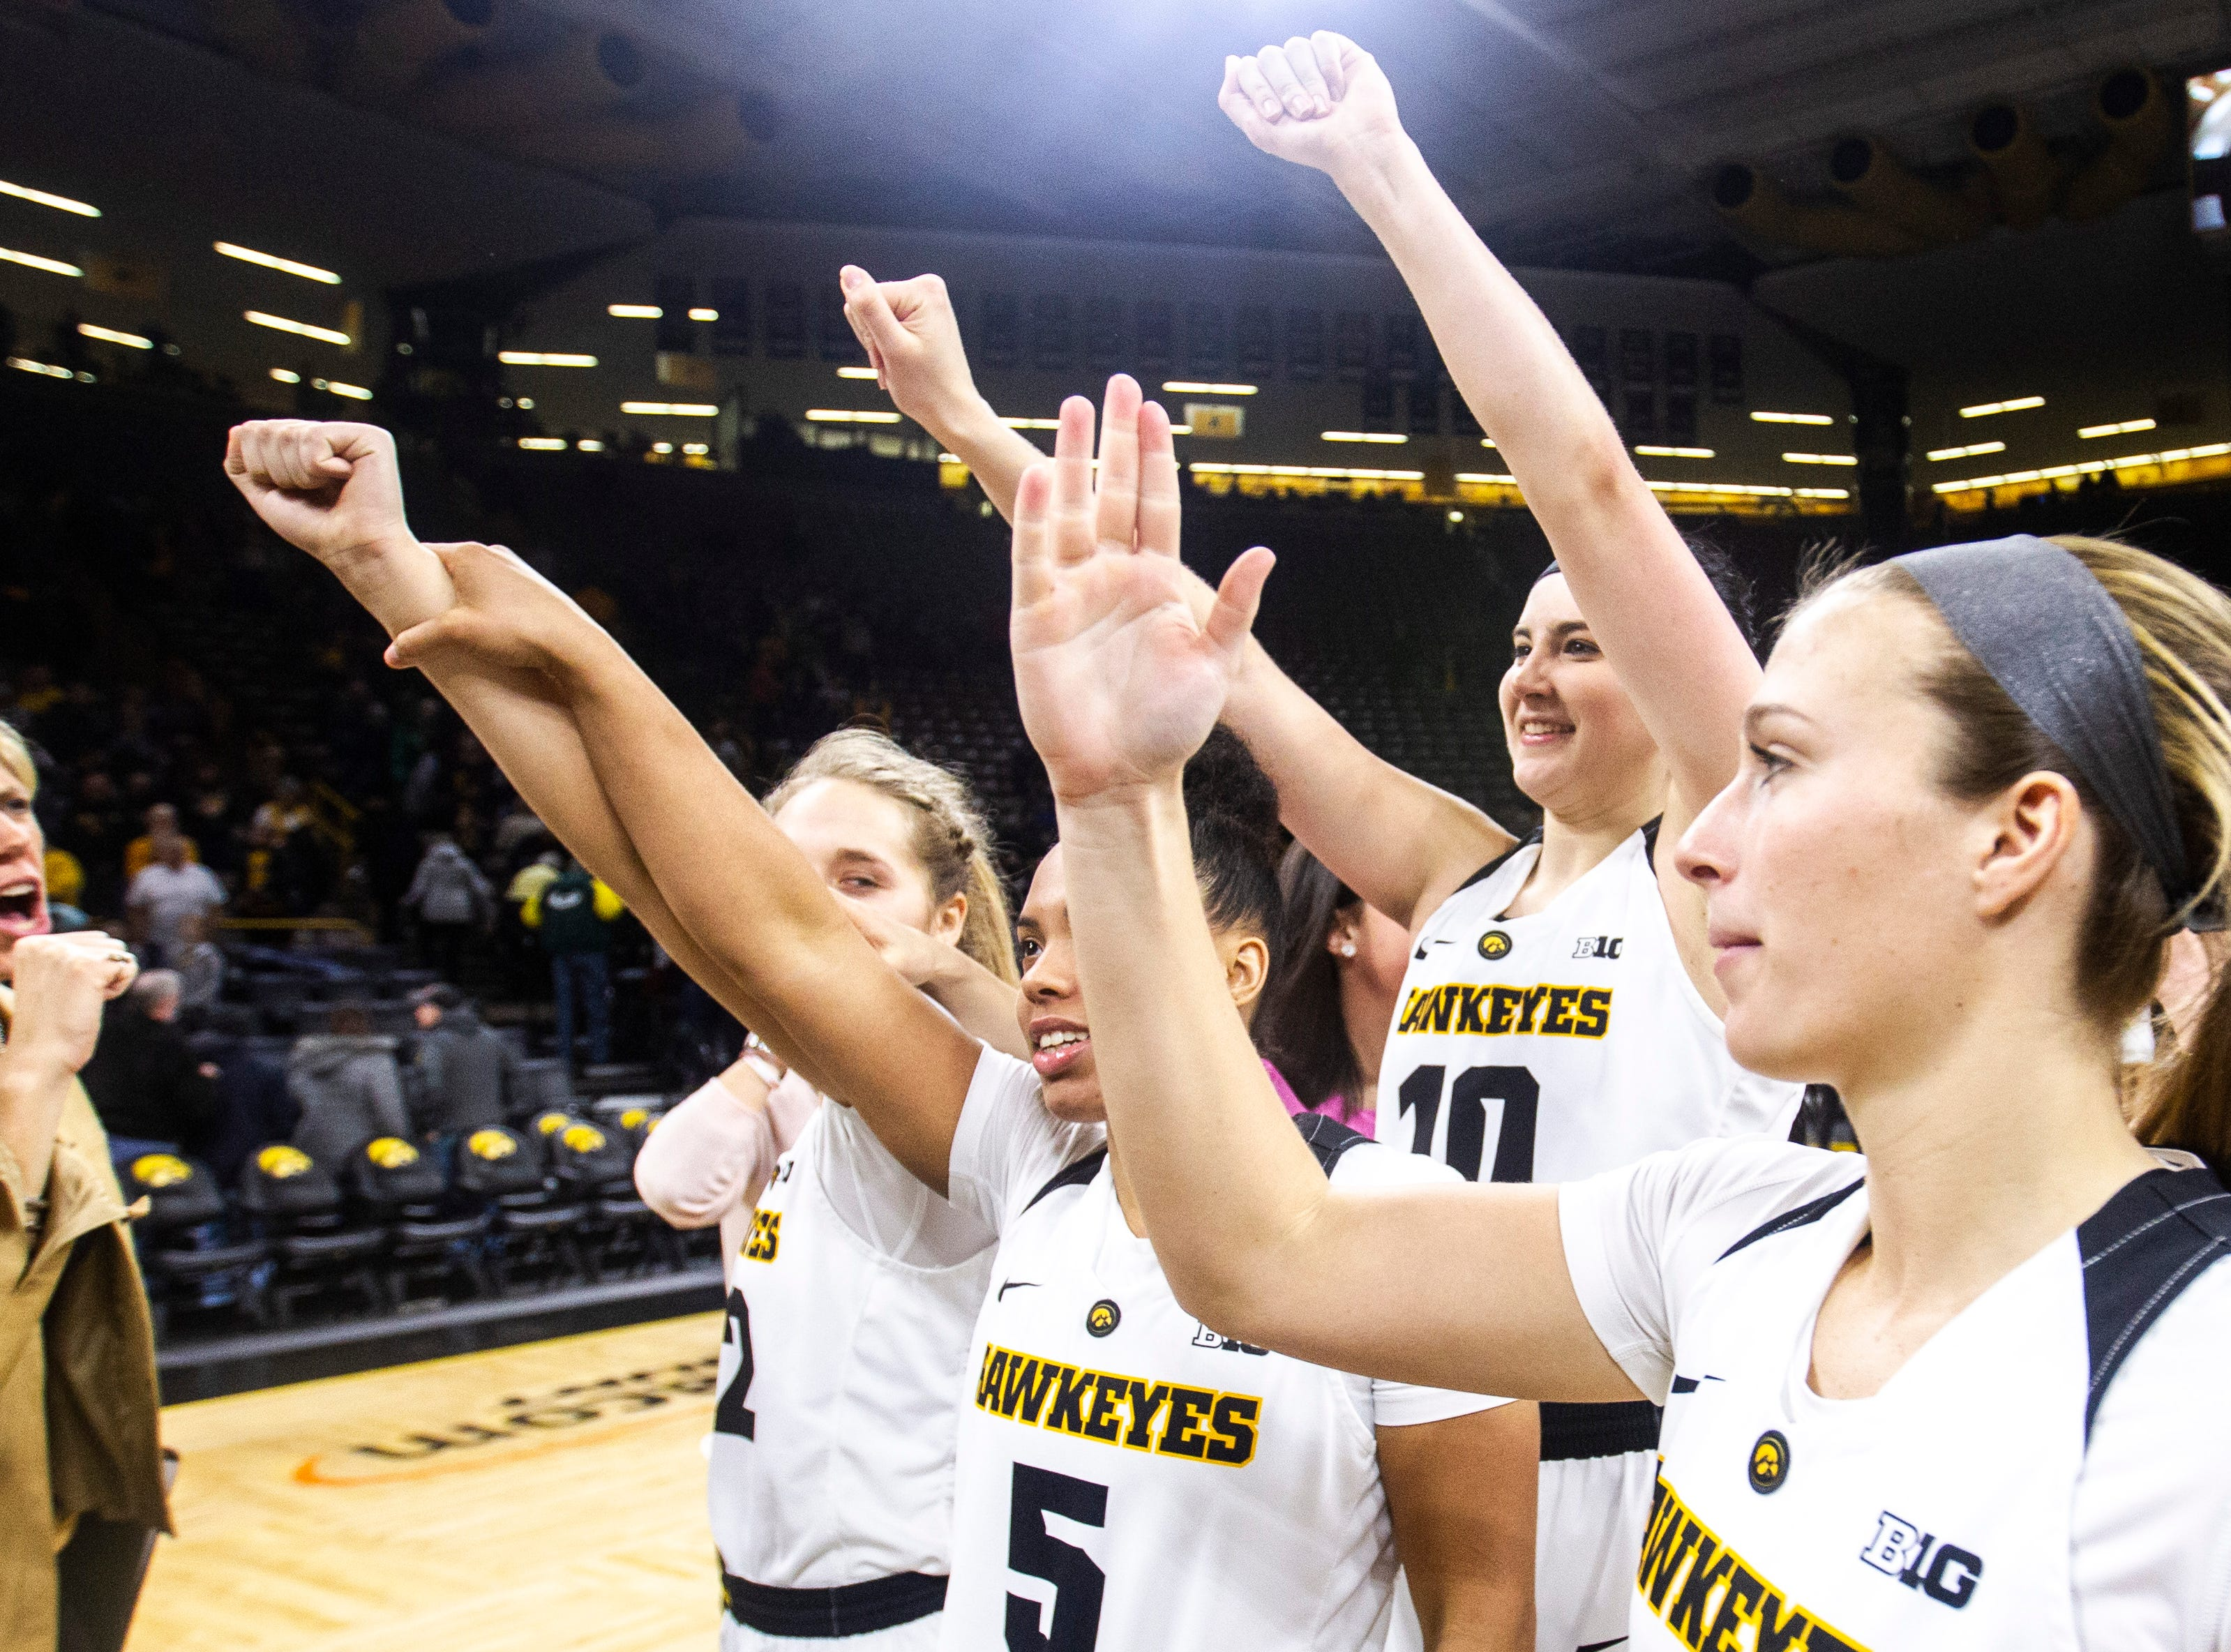 Iowa Hawkeyes celebrate after a NCAA Big Ten Conference women's basketball game against Illinois on Thursday, Feb. 14, 2019 at Carver-Hawkeye Arena in Iowa City, Iowa.